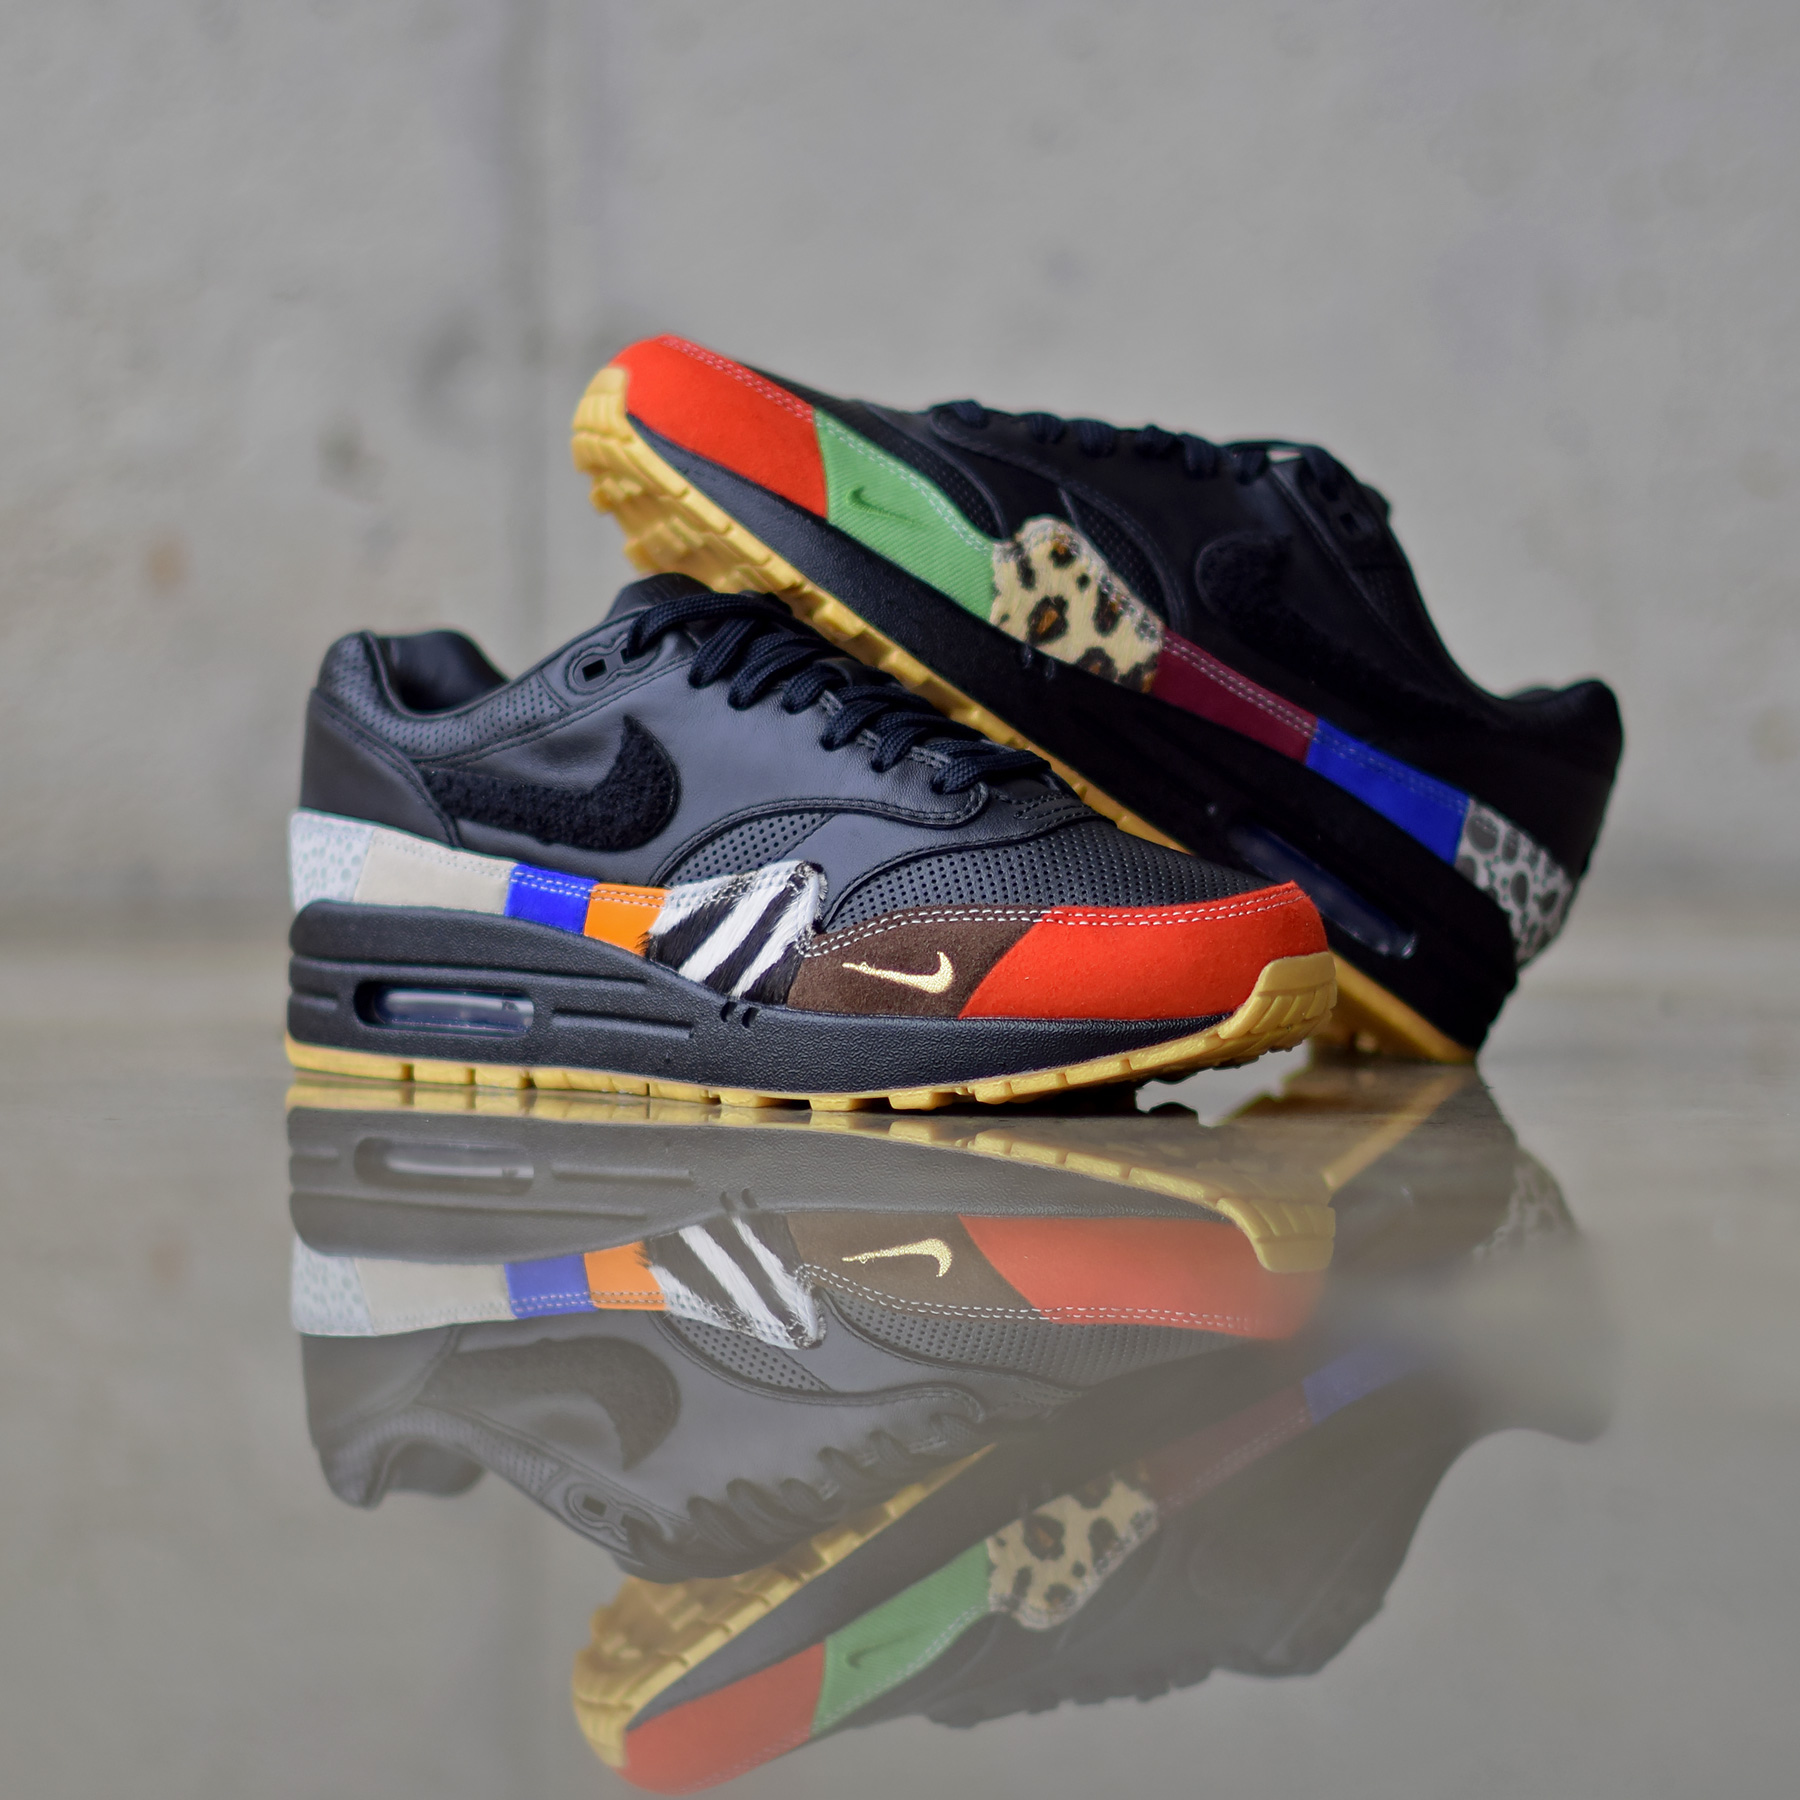 La Nike Air Max 1 MASTER sous plusieurs angles.